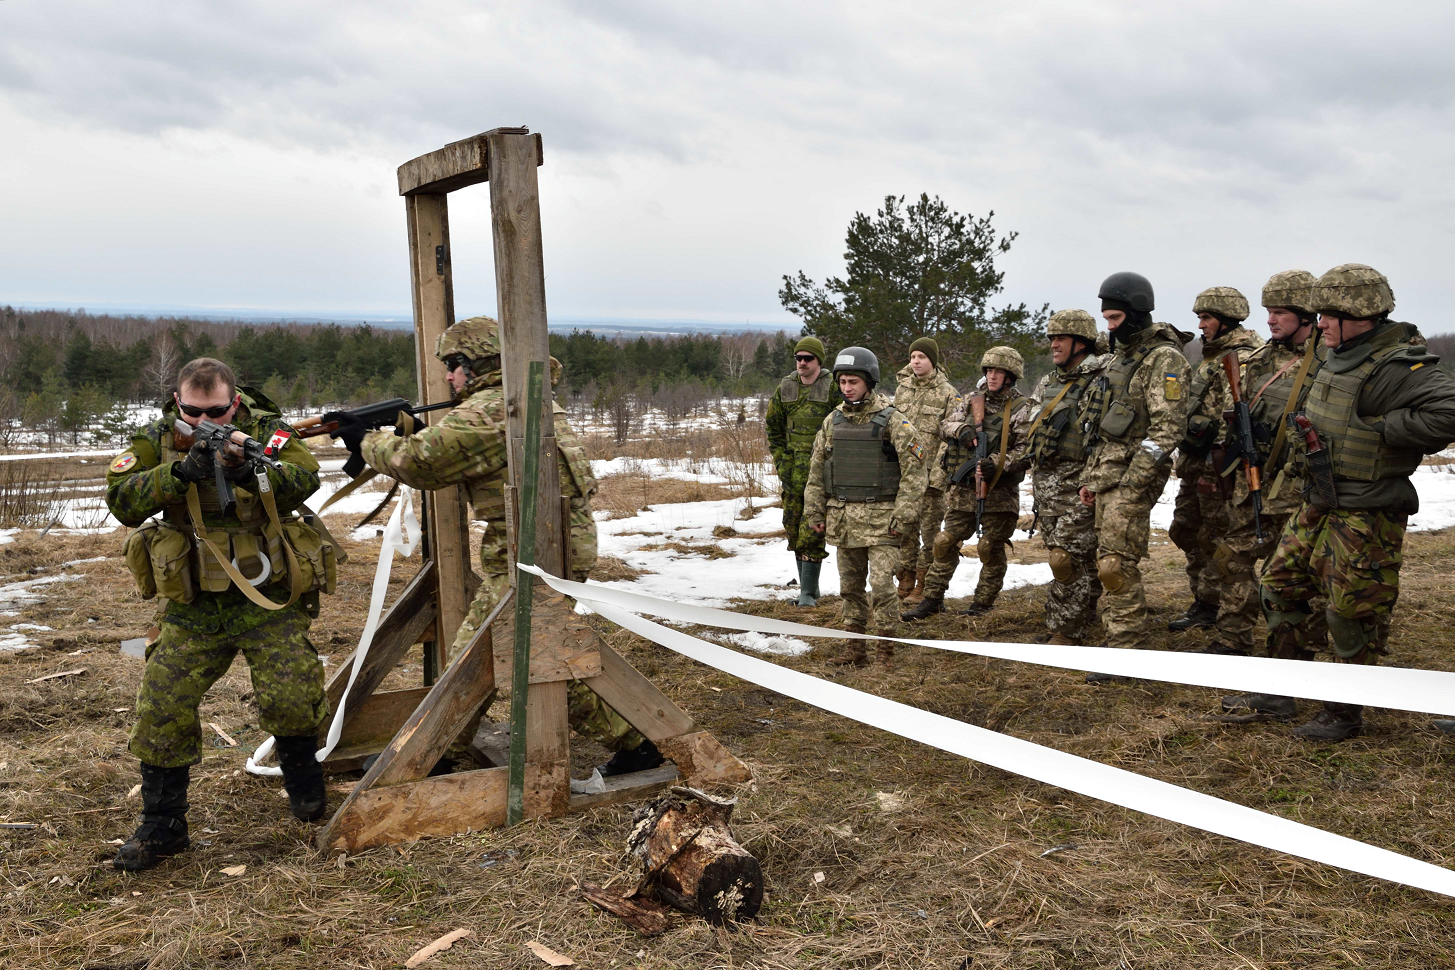 February 23, 2017. Canadian and American combat engineer instructors demonstrate door breaching and room clearing procedures to Ukrainian trainees at the International Peacekeeping and Security Centre in Starychi, Ukraine on February 23, 2017. (Photo: Joint Task Force – Ukraine)